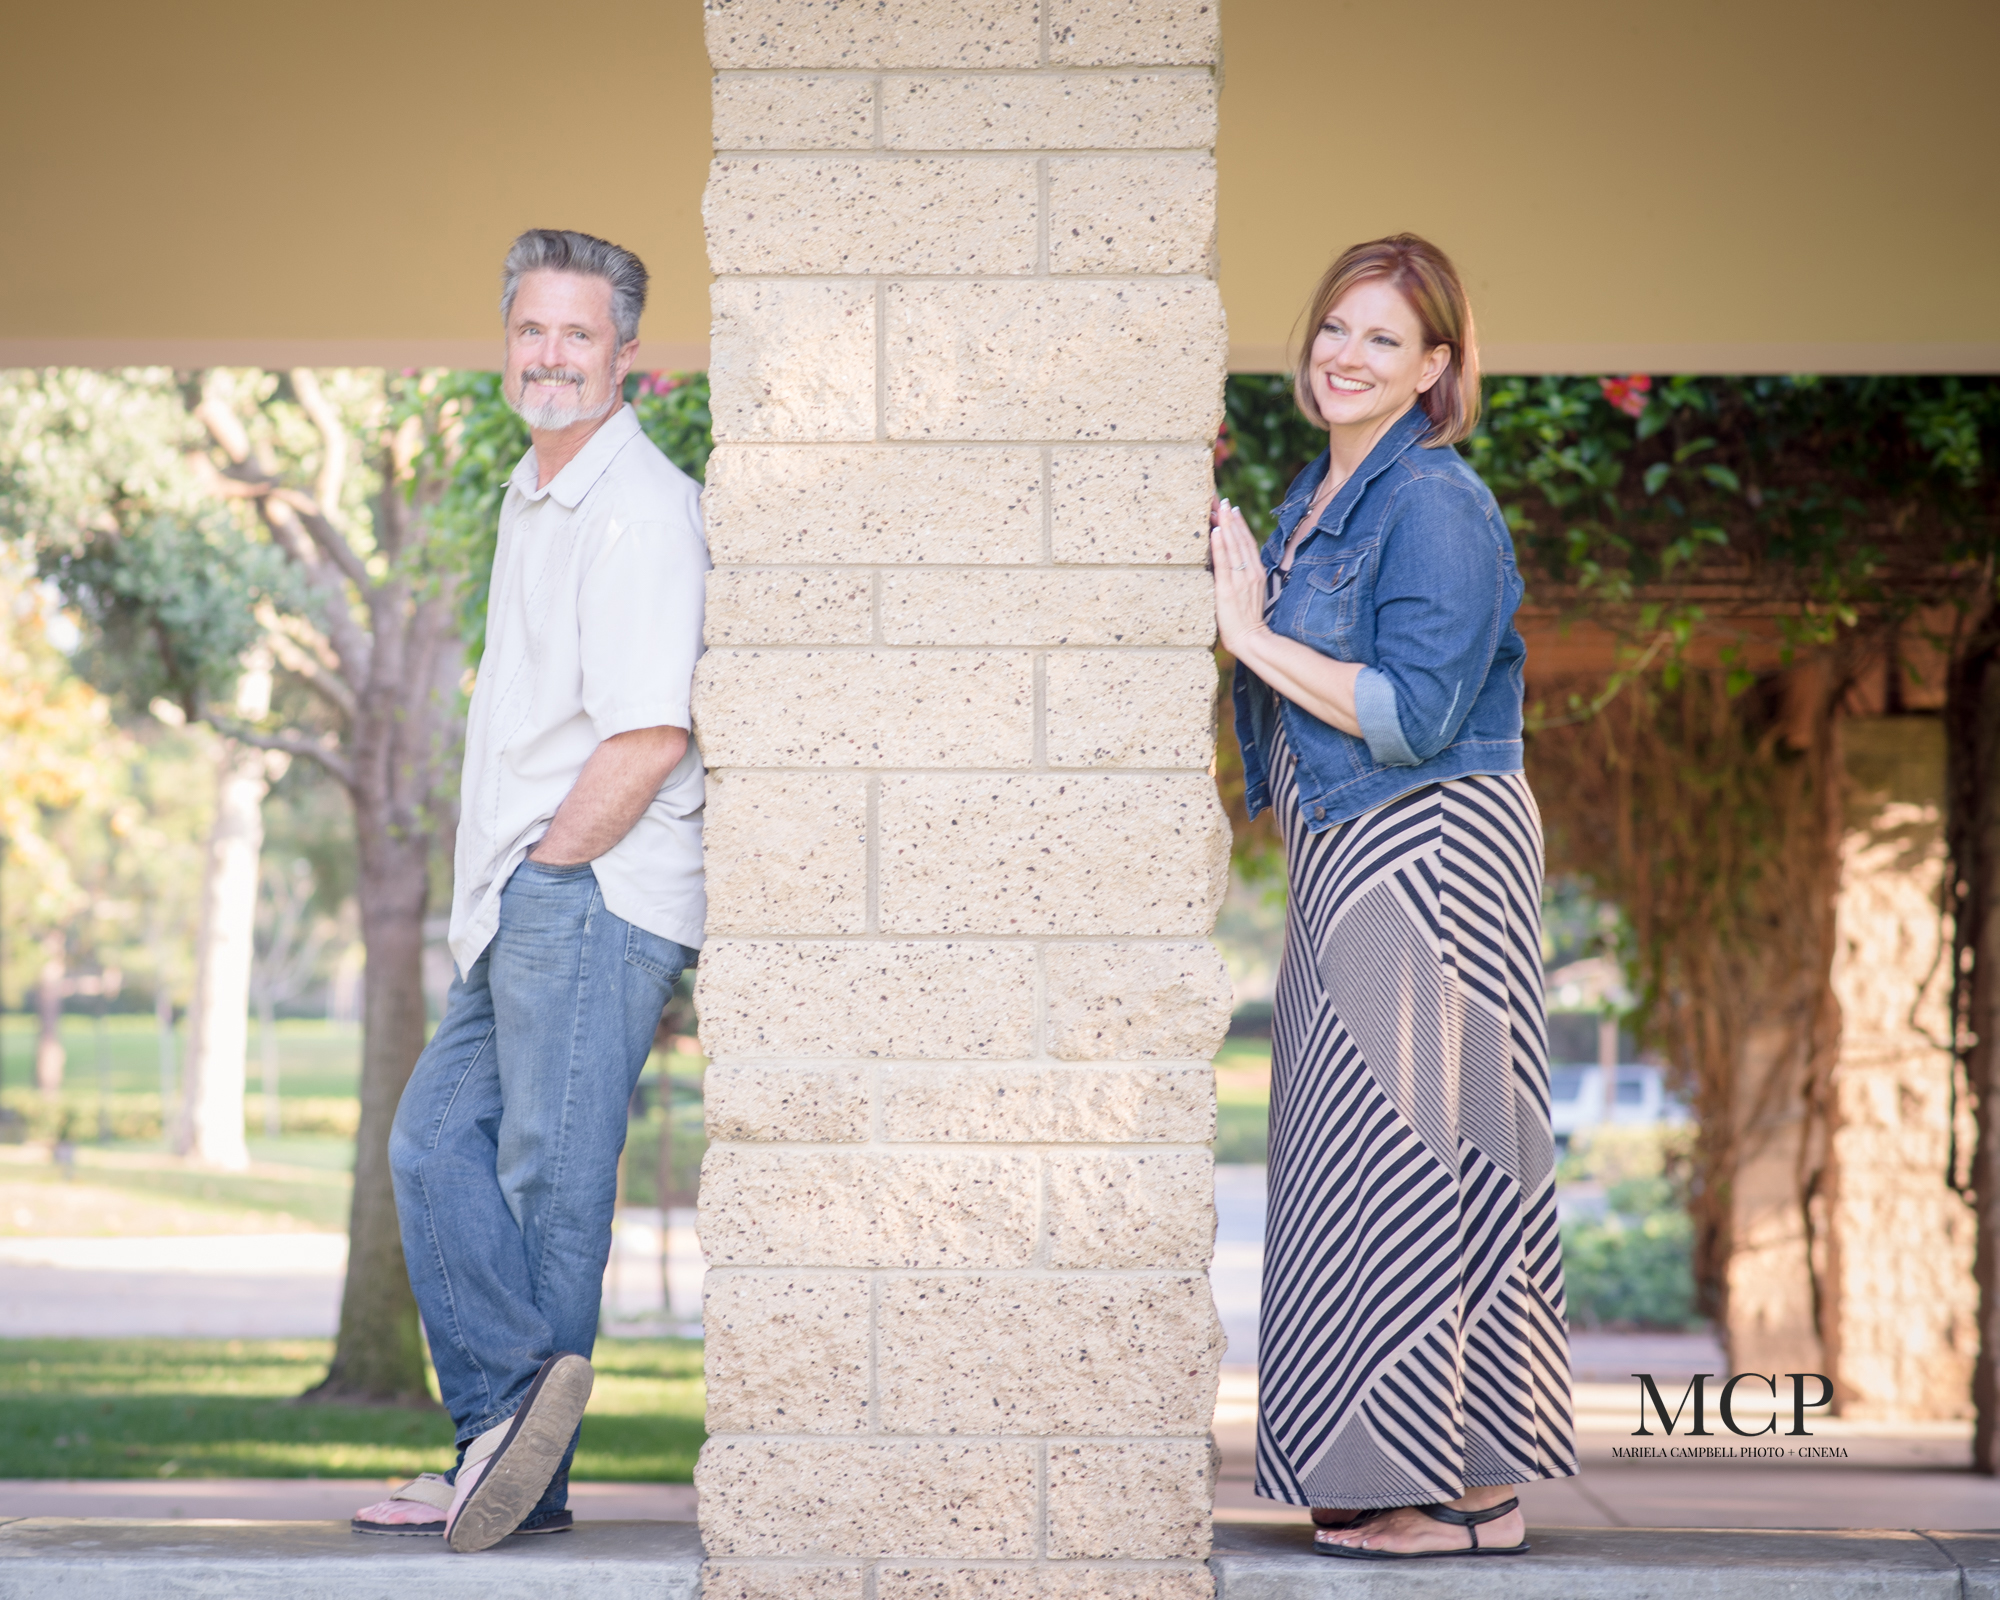 M&T engagment blog. MCP-10.jpg